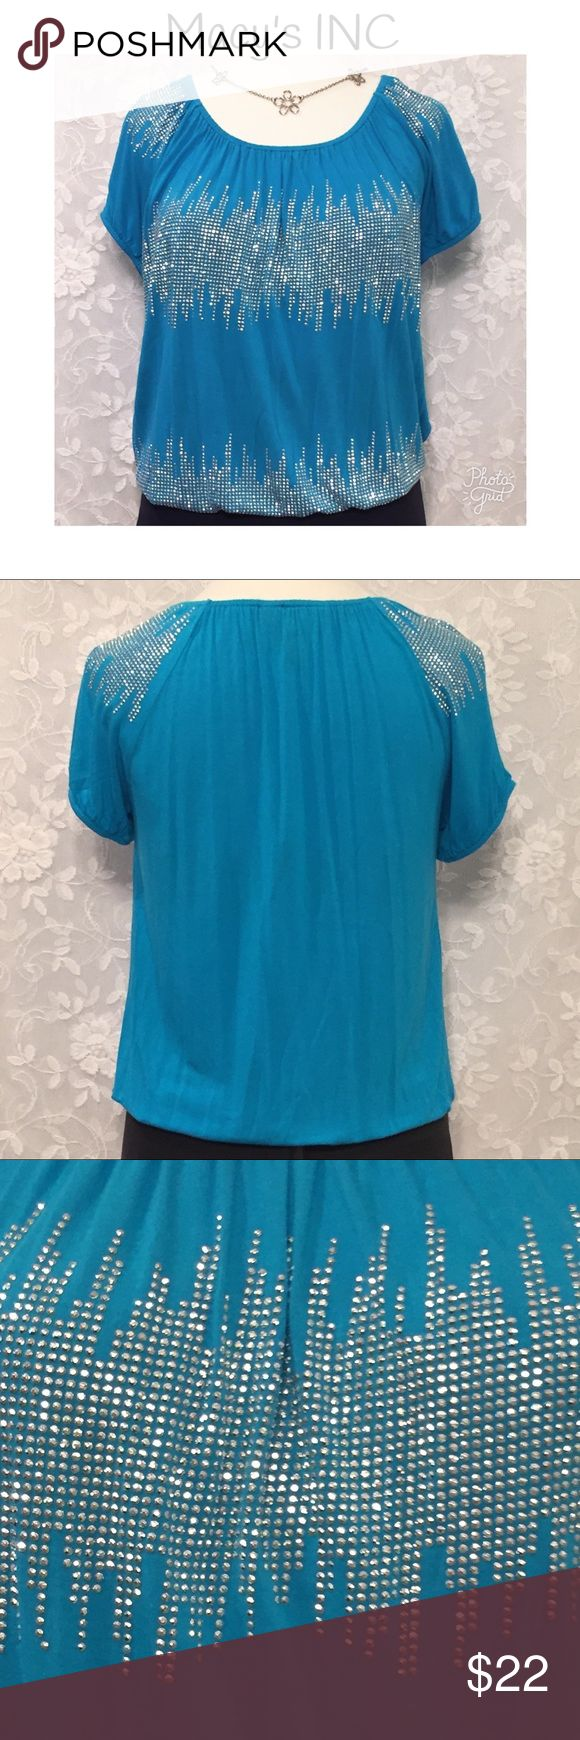 "SUPER CUTE MACY'S INC BLINGY BLOUSE! Super cute Macy's INC blouse!  Turquoise color. Rhinestone grommets! Elastic around neckline, bottom, and sleeves for added cuteness! Short sleeves.  Fabric is 100% rayon. Measurements: chest-44"", waist-44"", bottom-34"", length-25"".  Excellent used condition!  Necklace not for sale! INC International Concepts Tops Blouses"